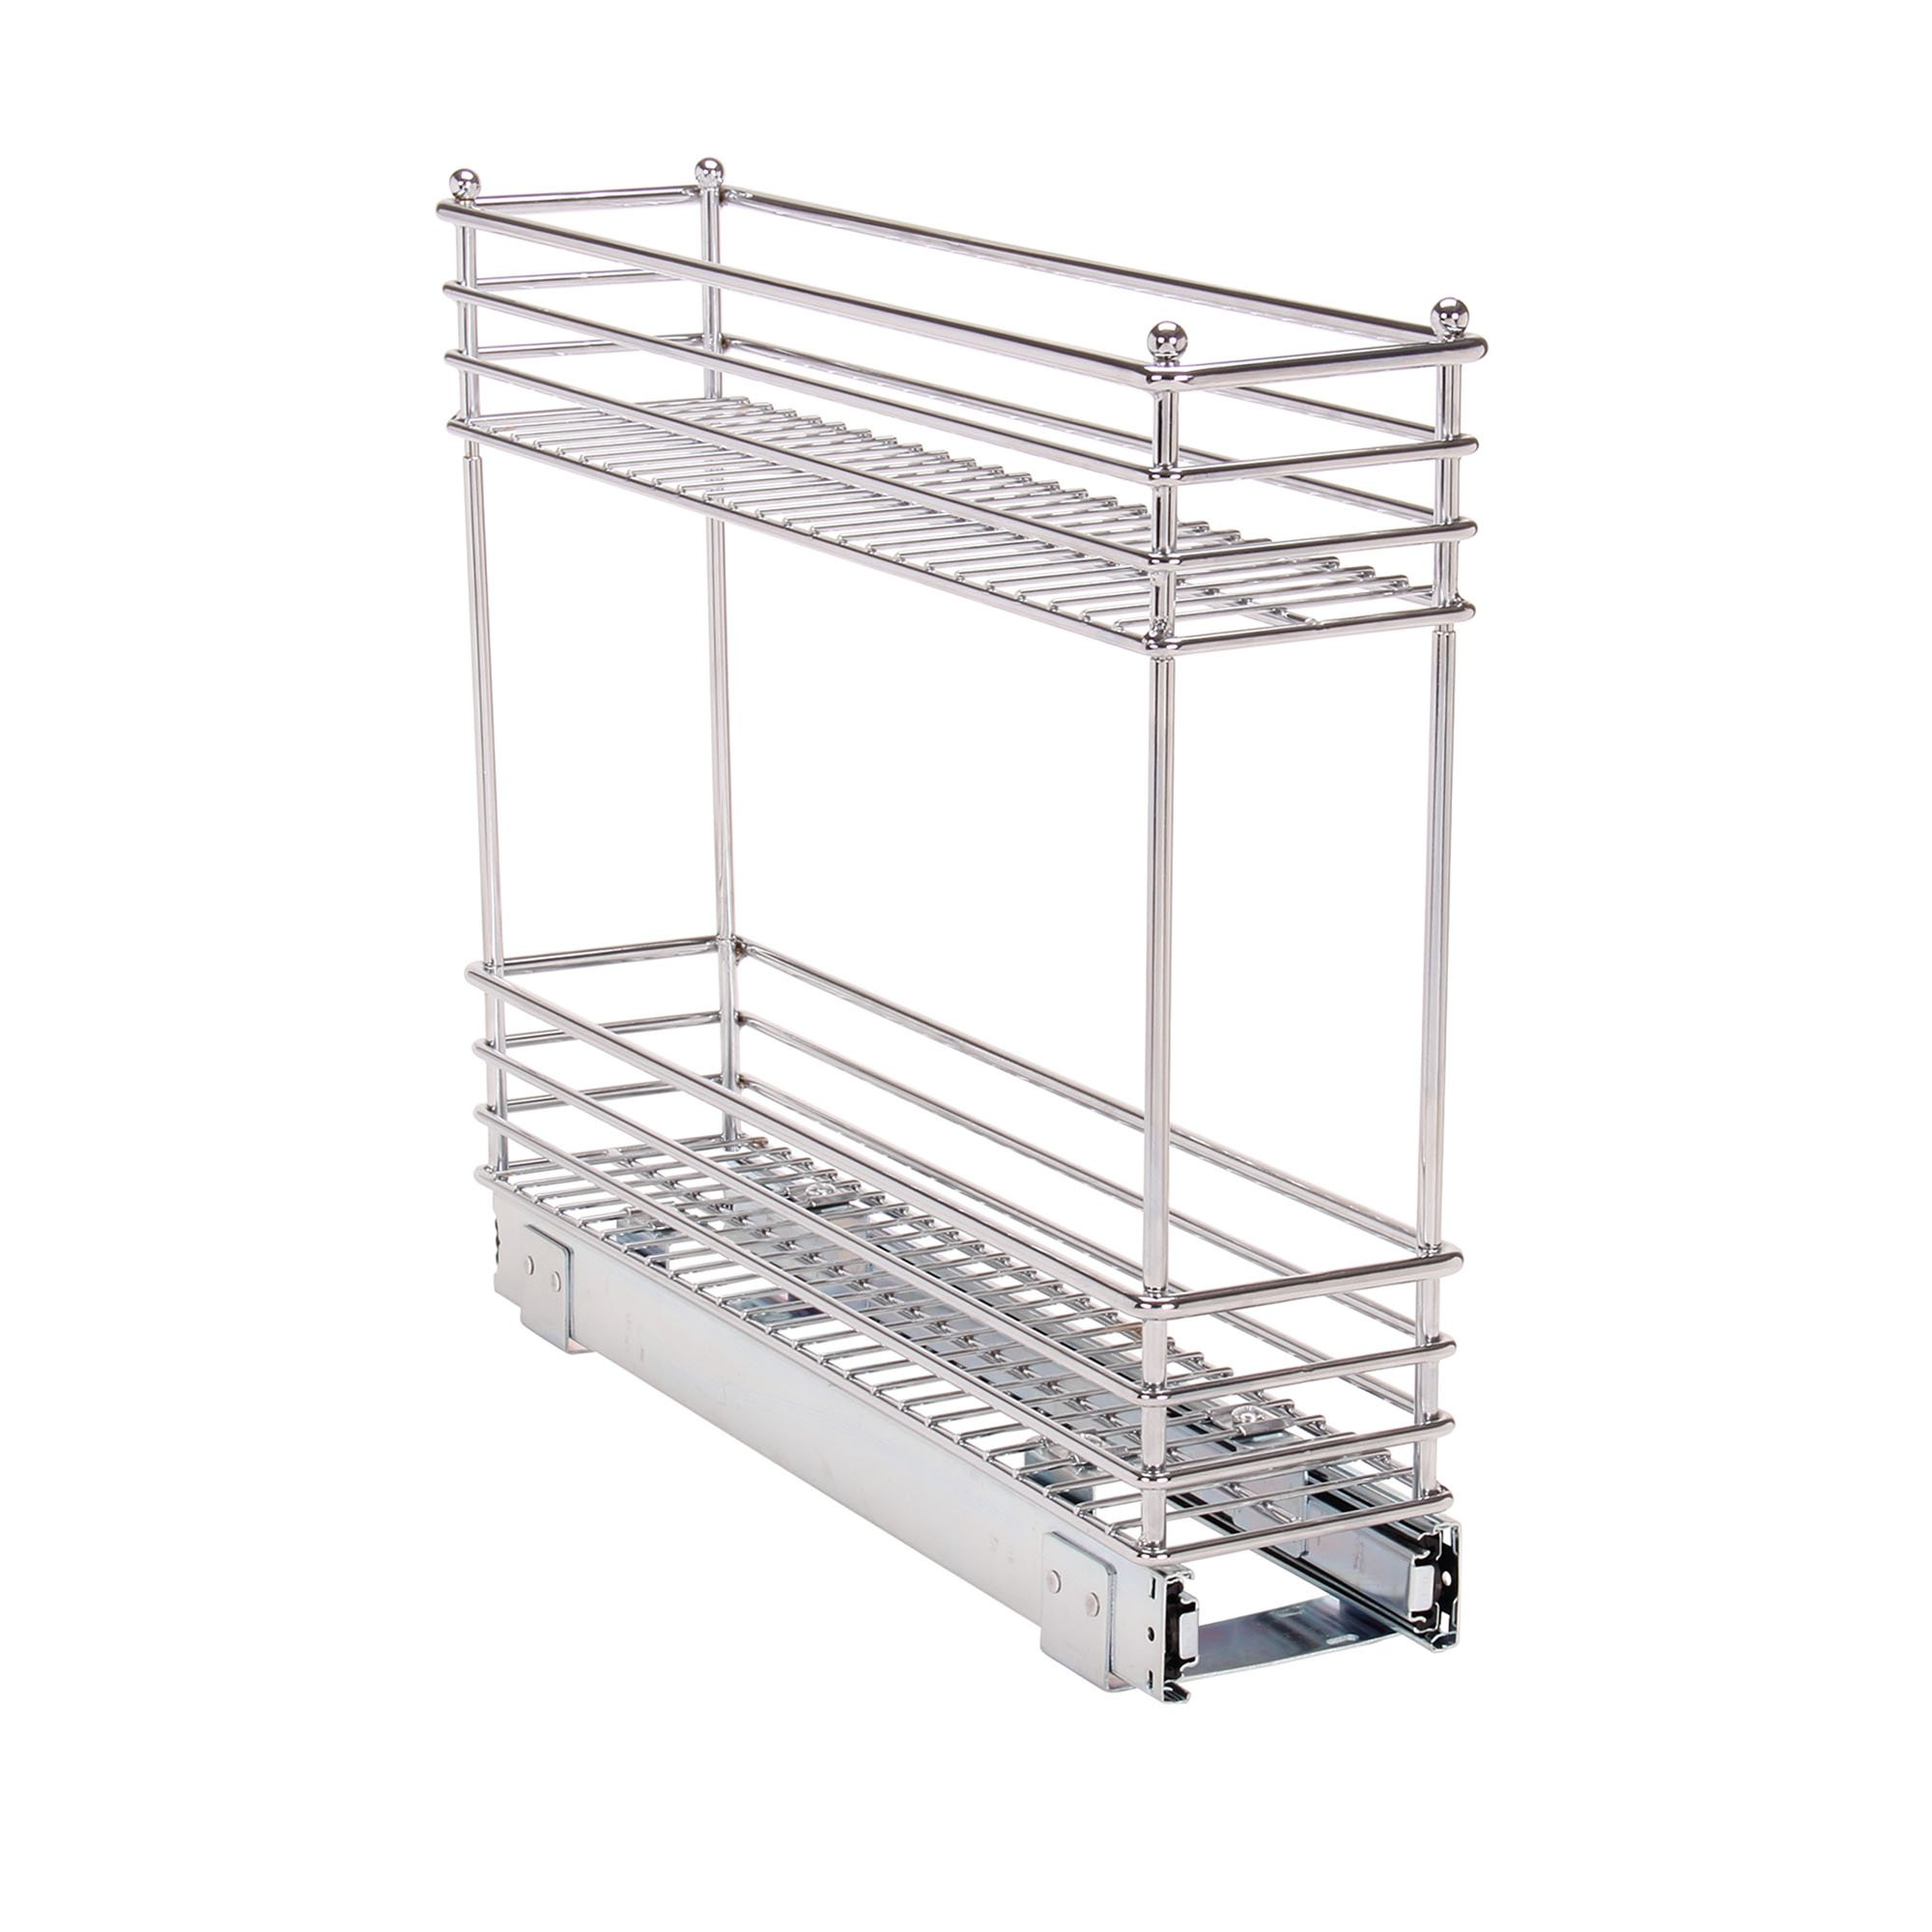 Household Essentials Glidez Narrow Sliding Organizer, 5'', Chrome by Household Essentials